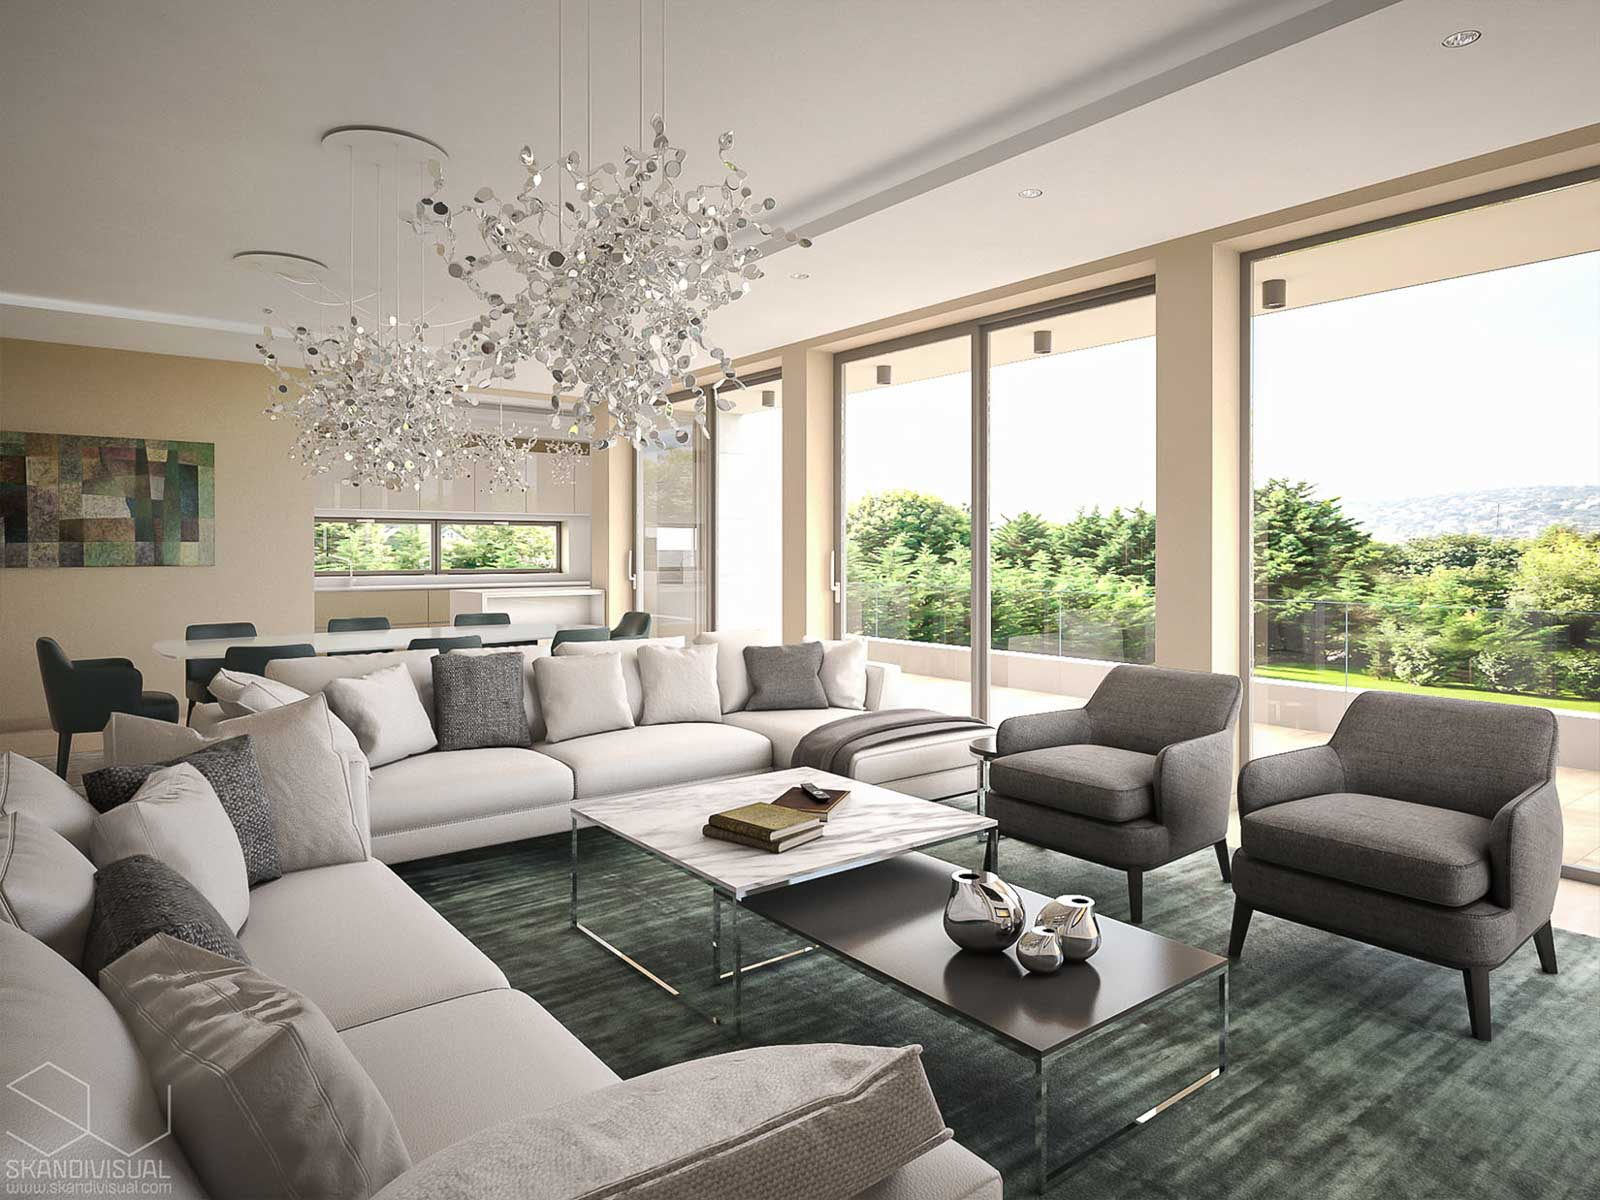 Luxury interior with a view